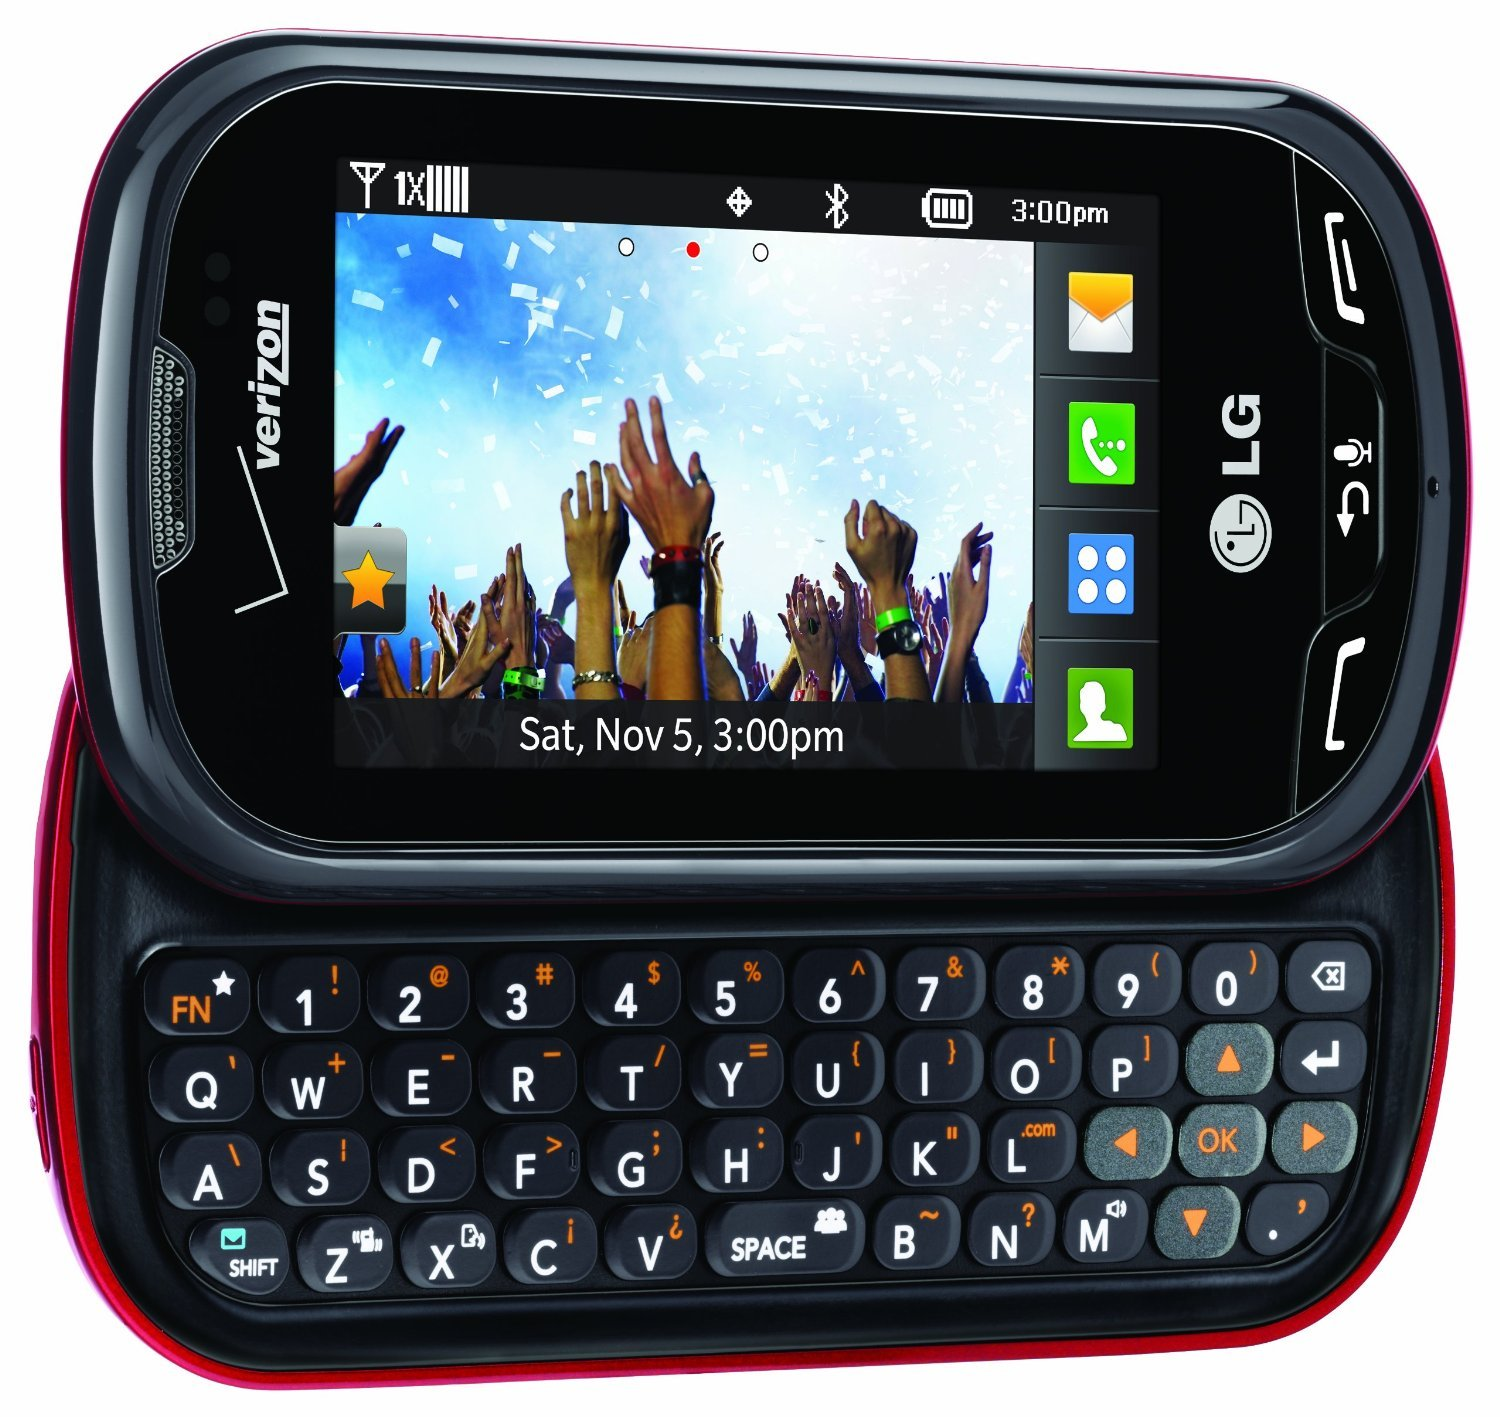 Amazon.com: Verizon LG Extravert No Contract QWERTY 2MP Camera Touchscreen  Cell Phone - Red/Black - For Verizon Postpaid Plans: Cell Phones &  Accessories